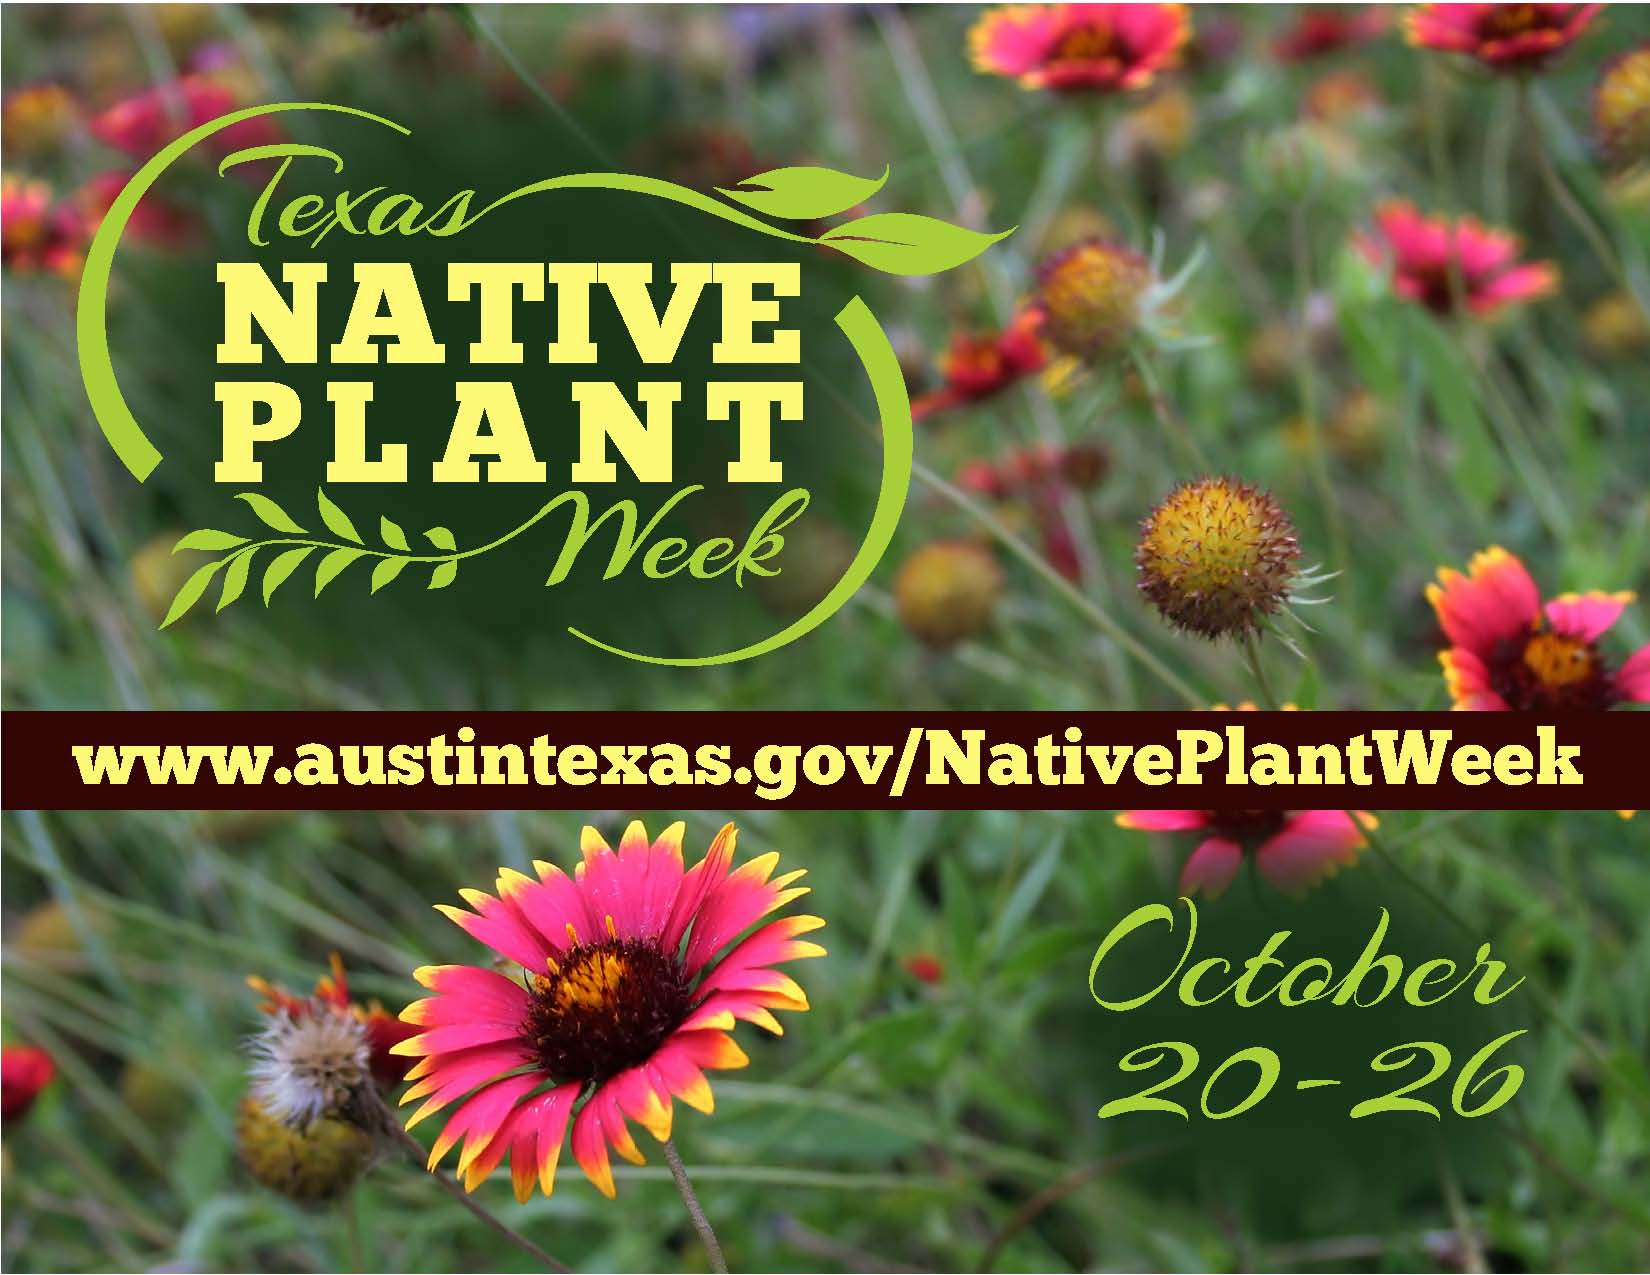 Native Plant Week Oct. 20-26